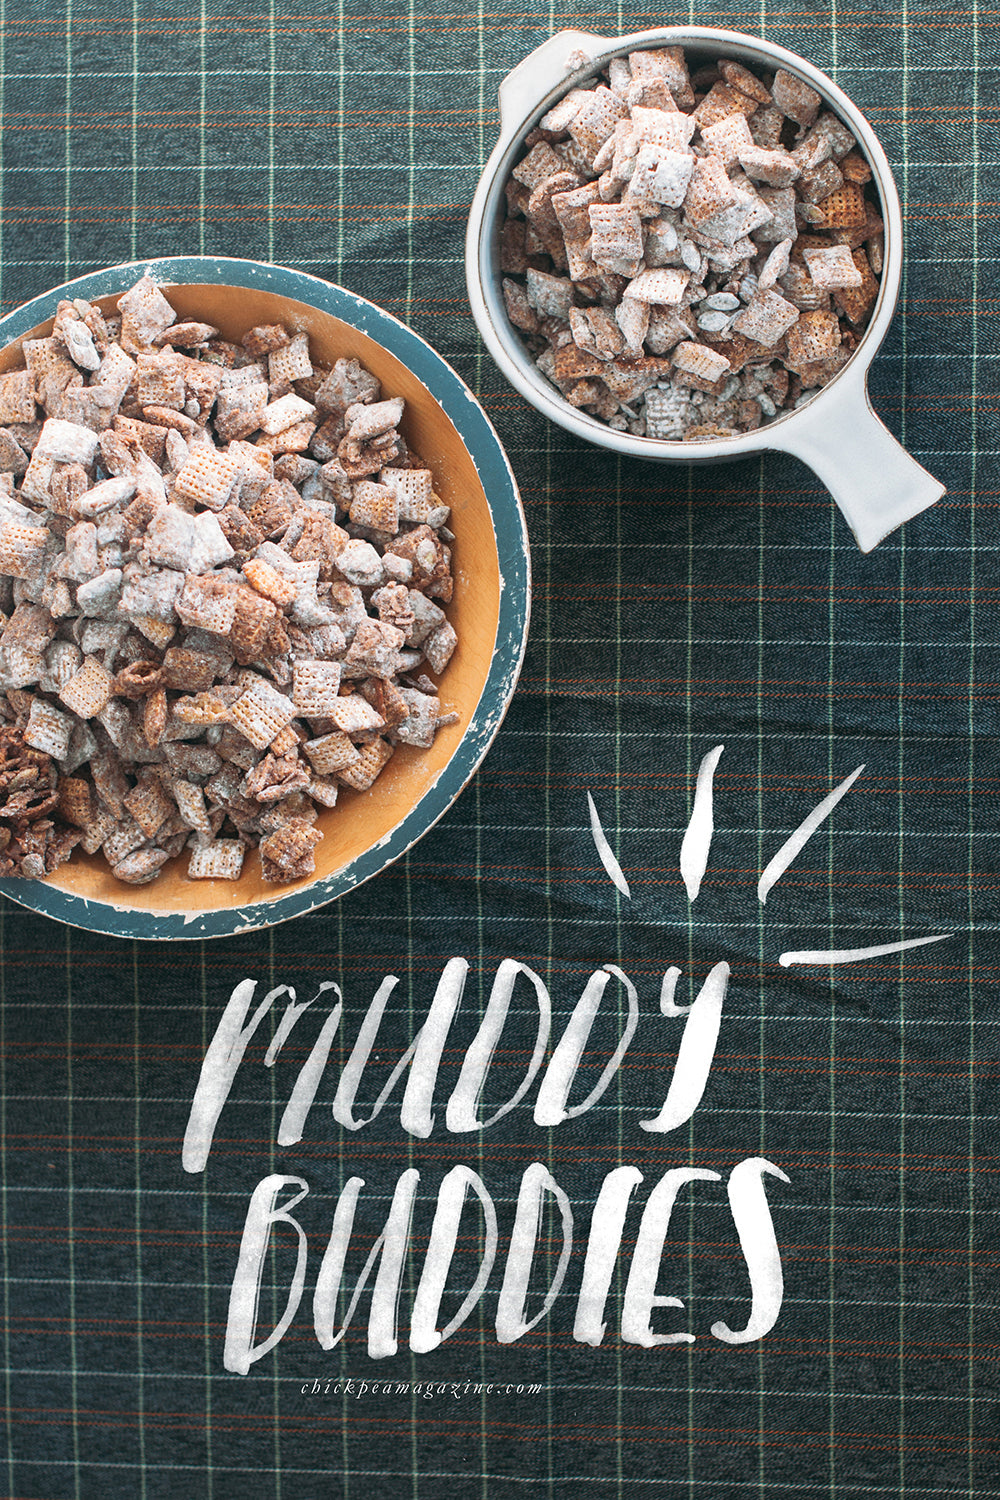 vegan muddy buddies